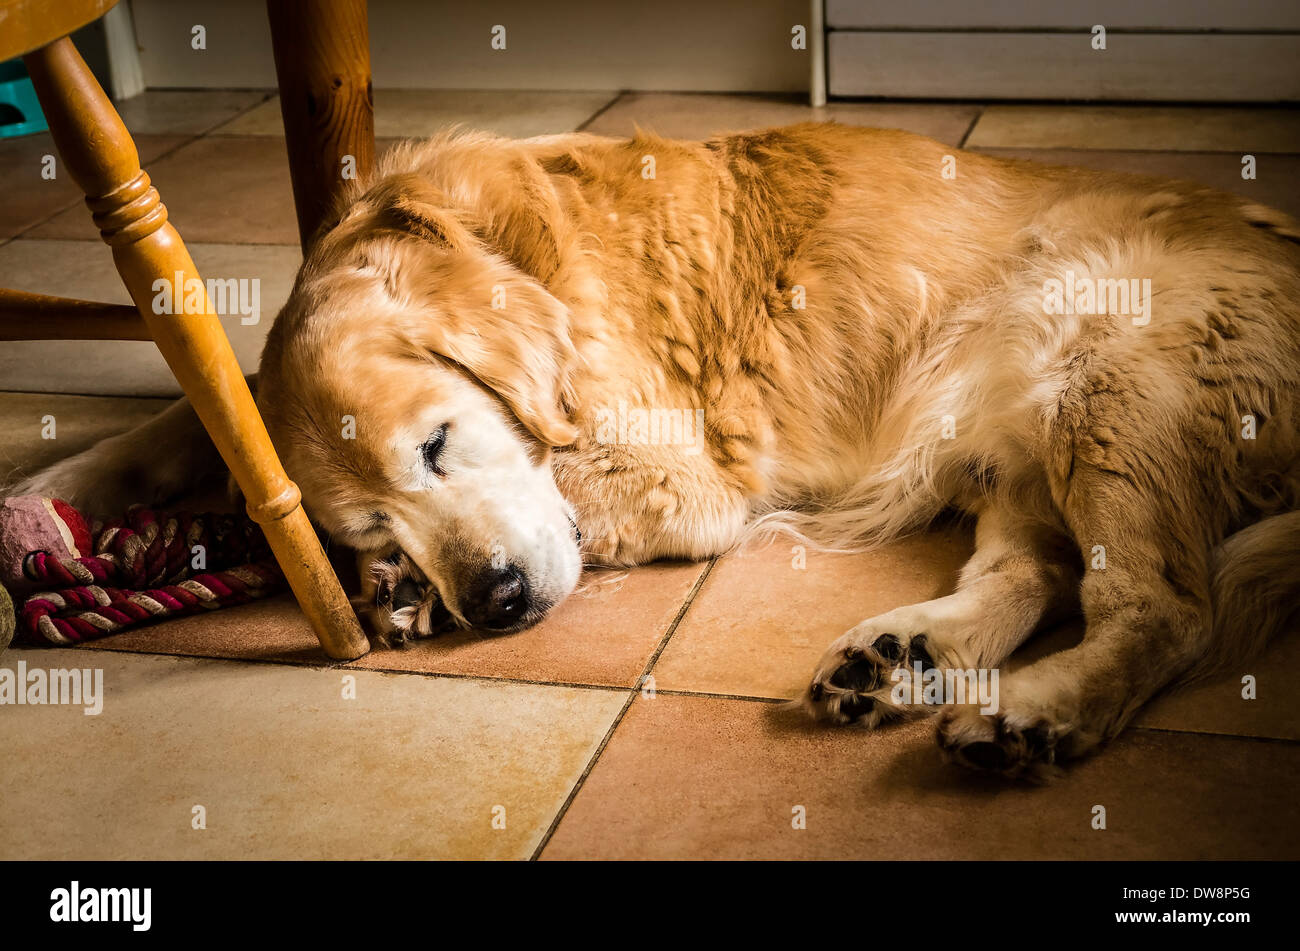 Golden retriever dog sleeping on kitchen floor in UK - Stock Image